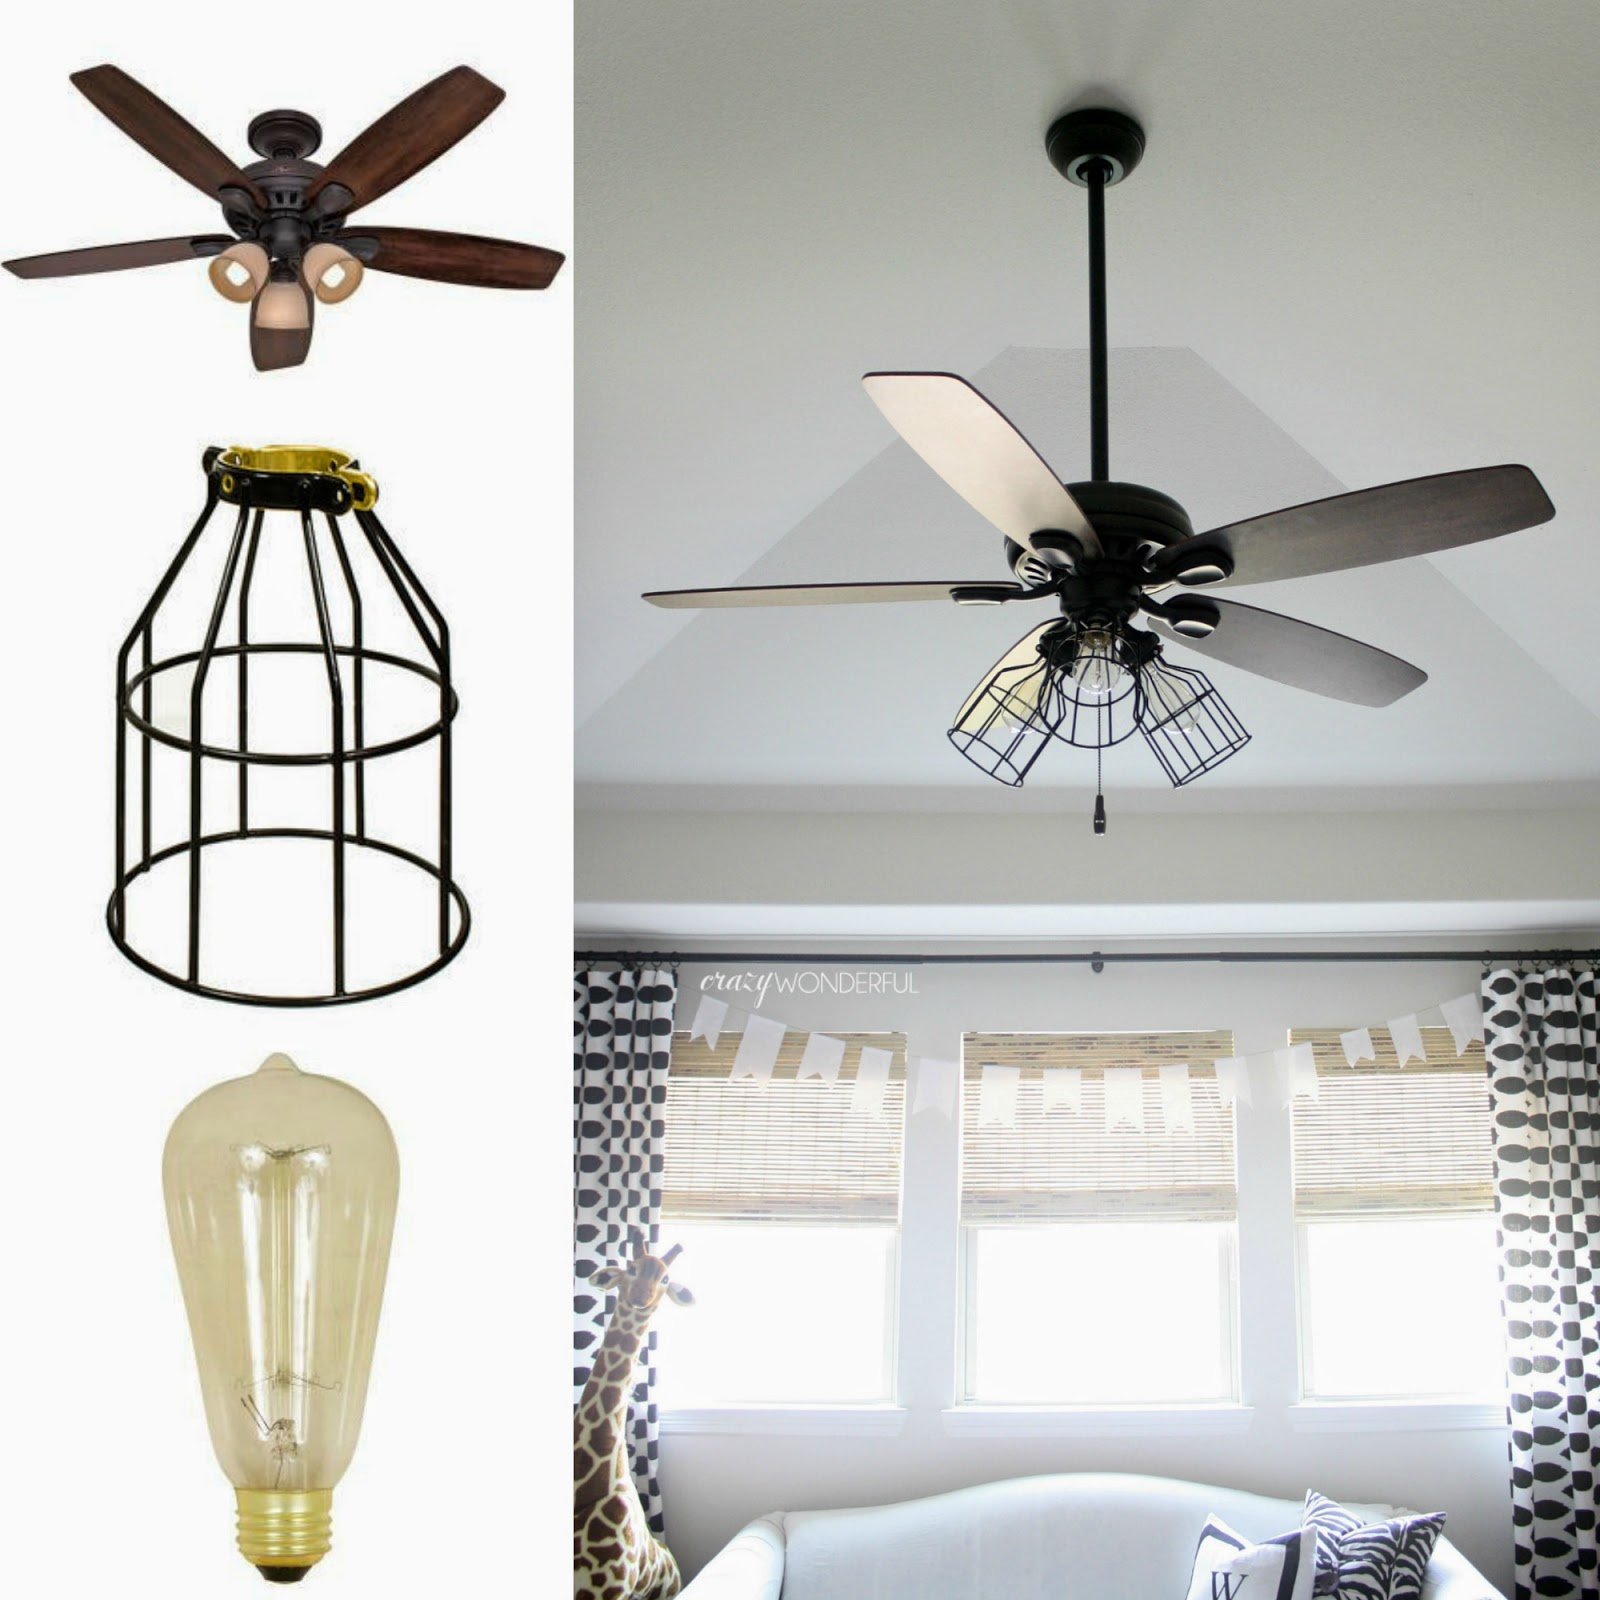 Diy Ceiling Fan Blades 10 Tips For Beginners